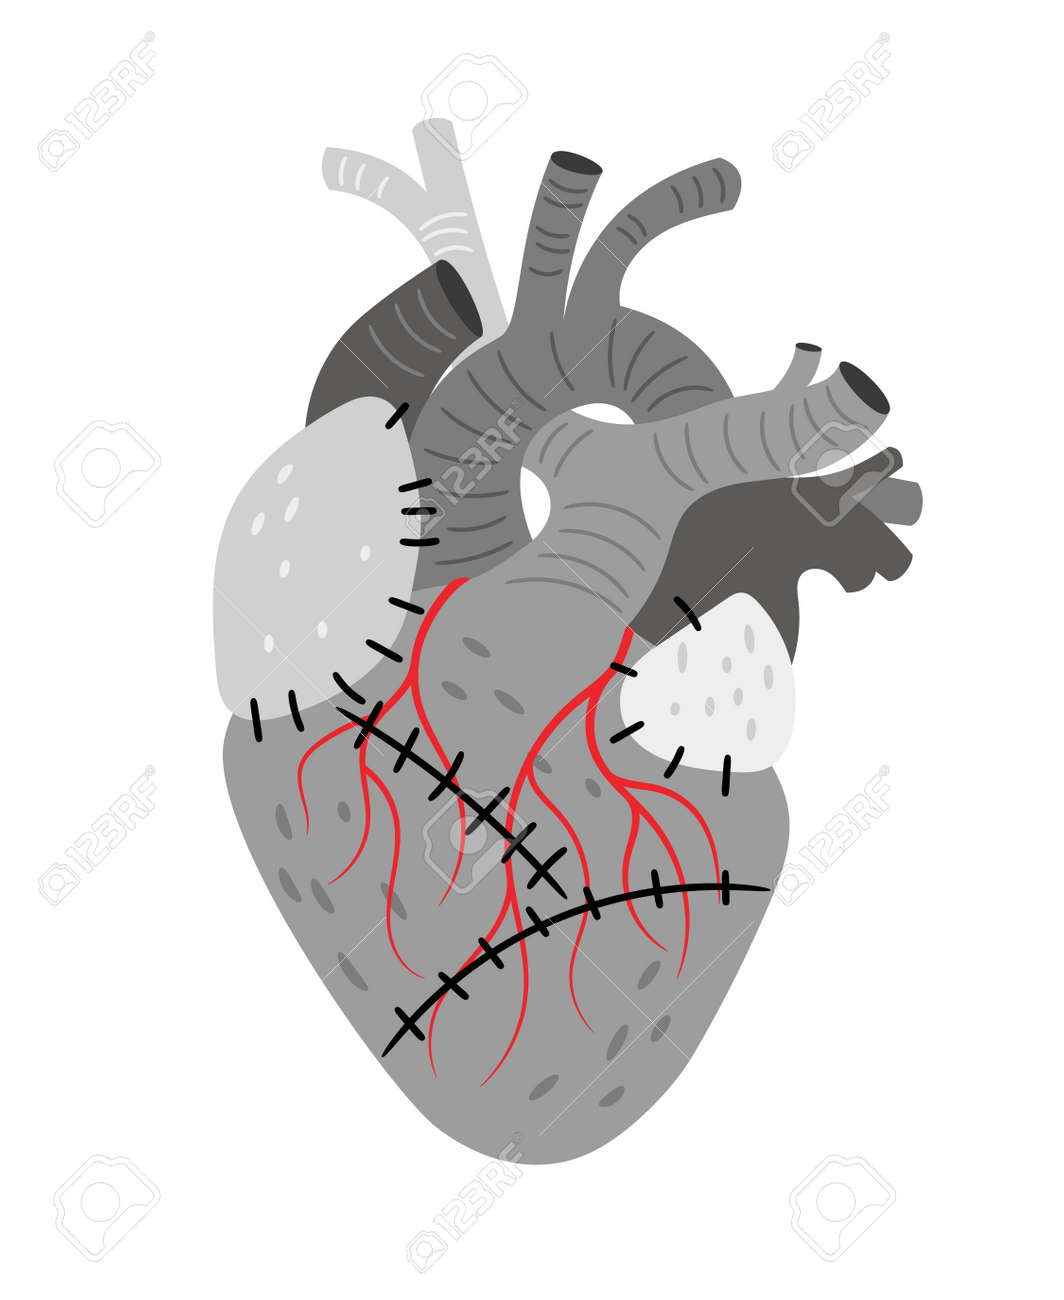 Anatomical organ, heart with stitches - 170995408